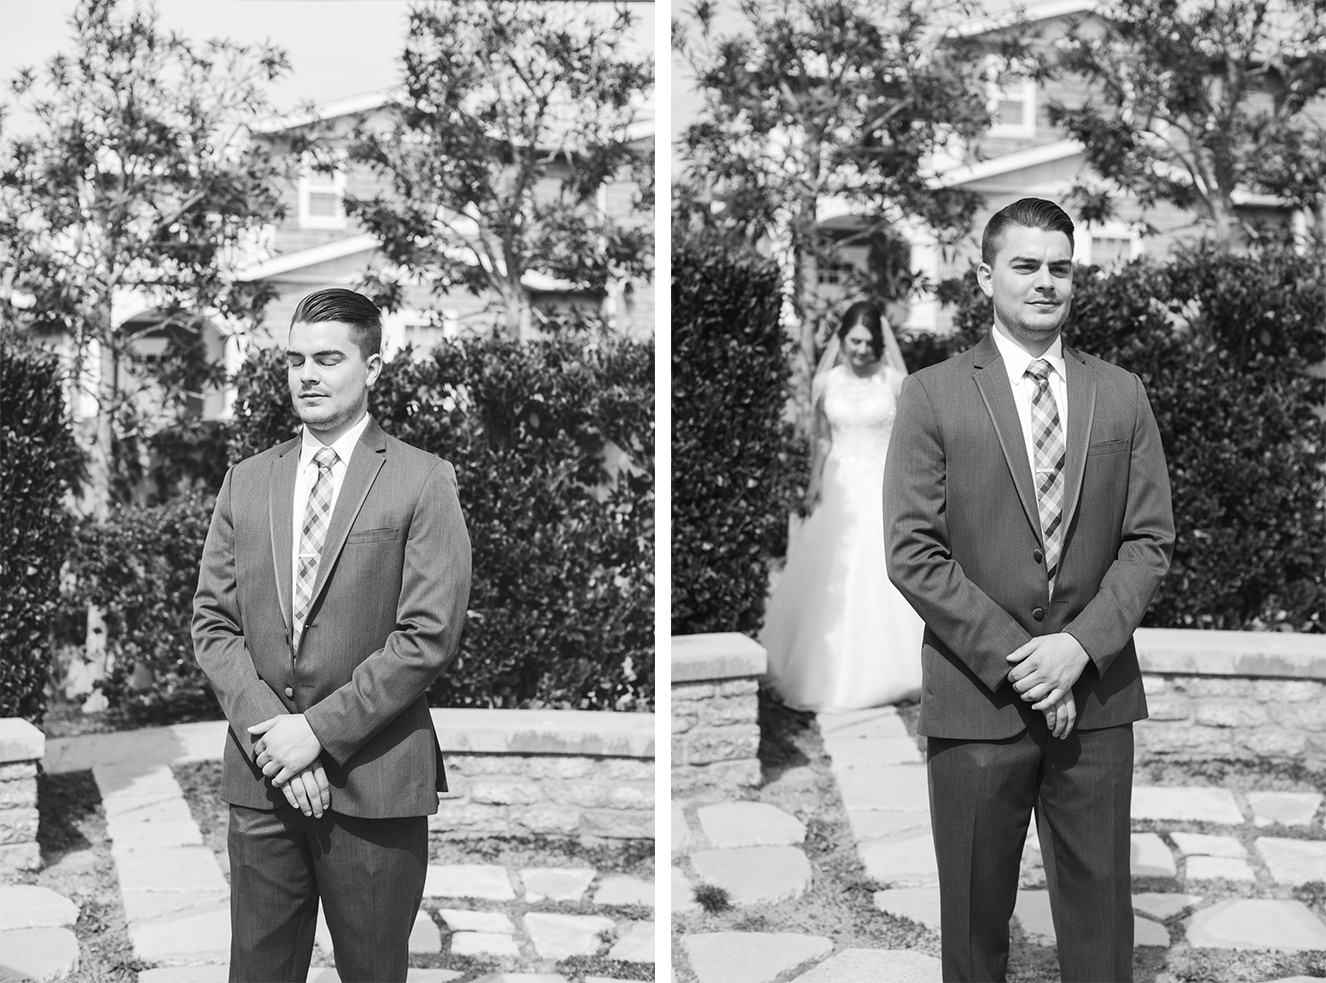 Aaron was pretty nervous and anxious to see his bride.